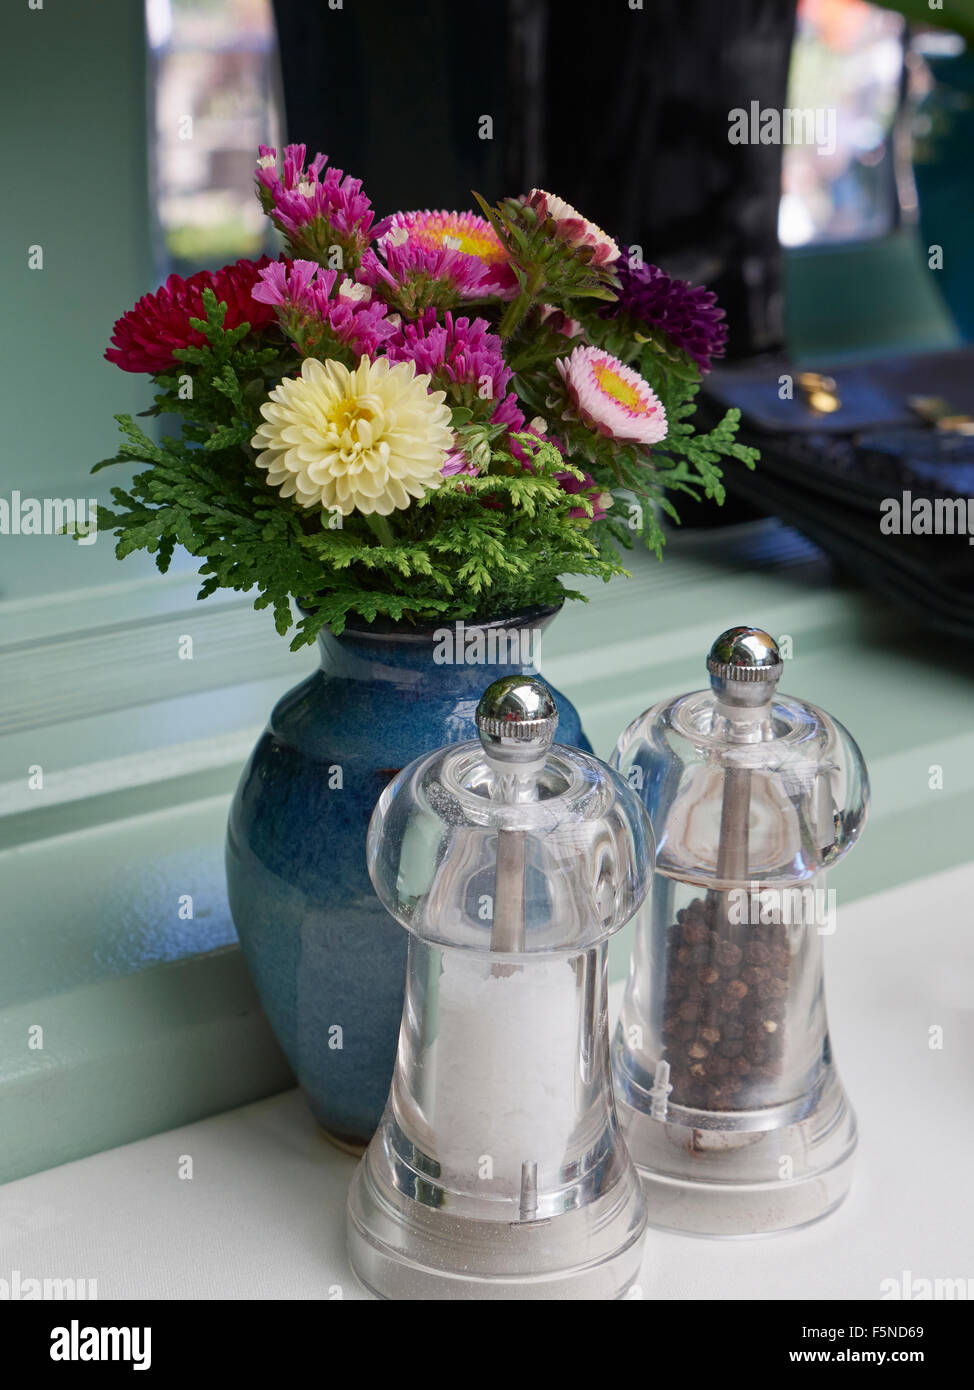 Small vase of fresh flowers with salt and pepper mills on a dining table - Stock Image